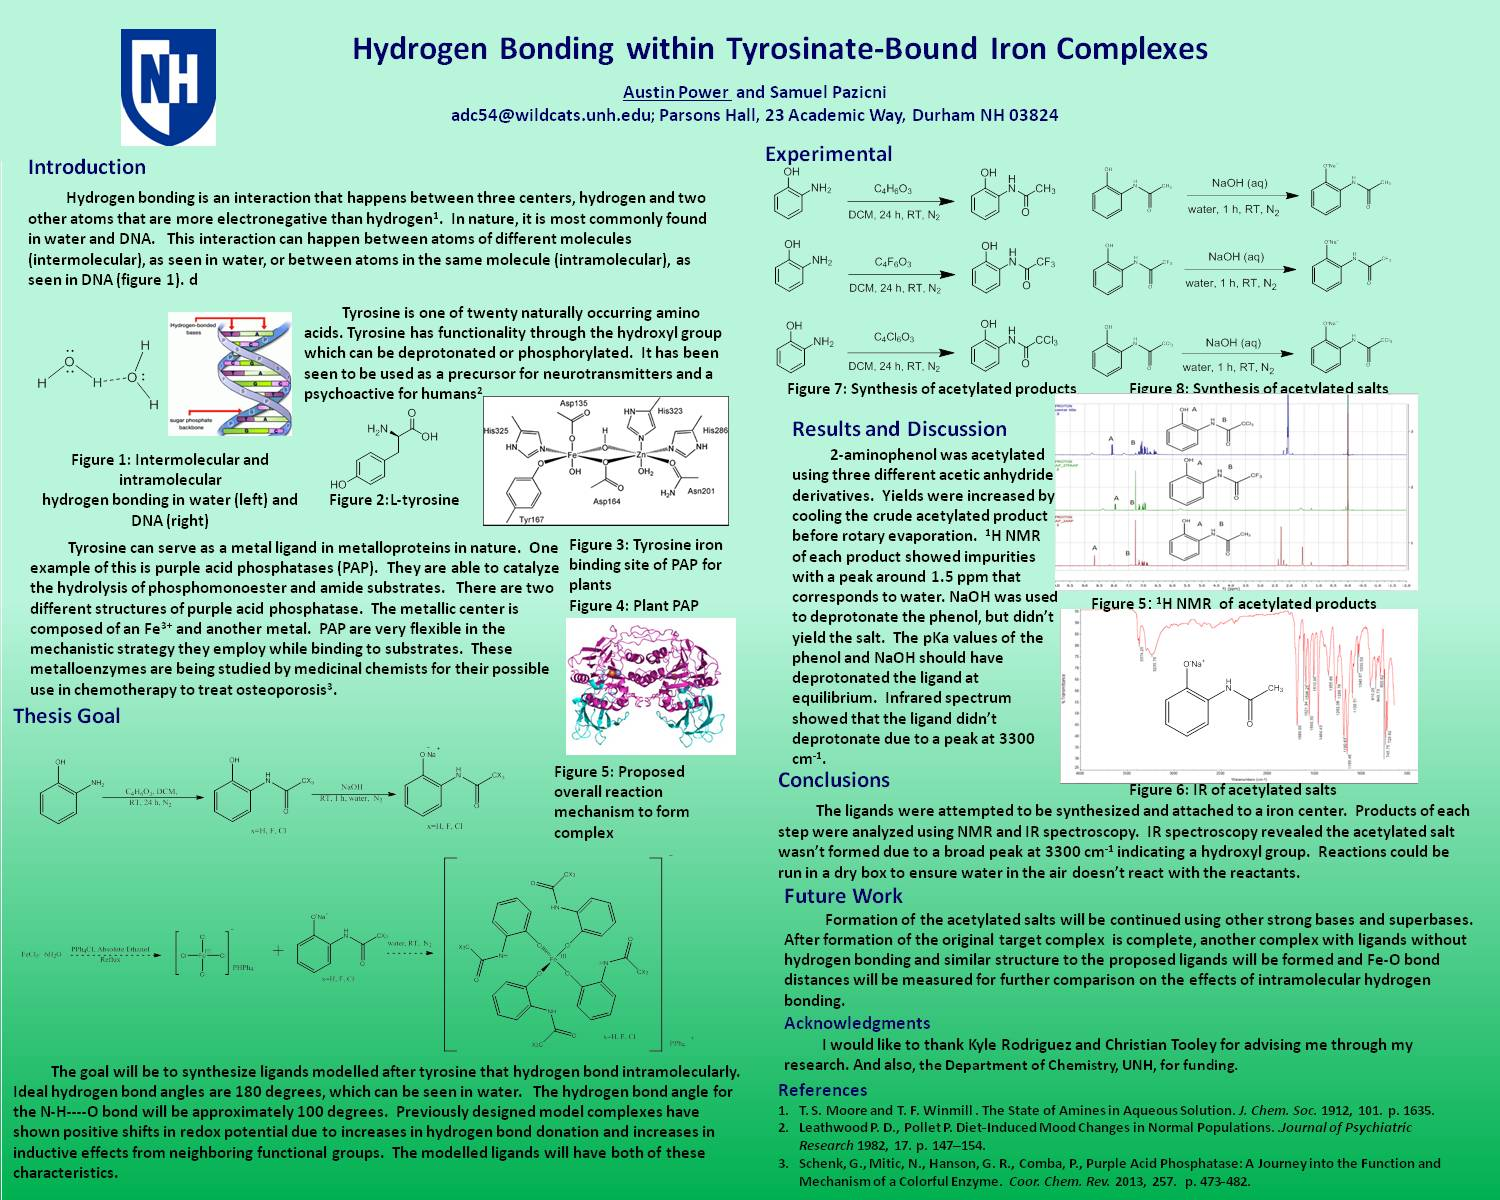 Hydrogen Bonding Within Tyrosinate-Bound Iron Complexes by adc54